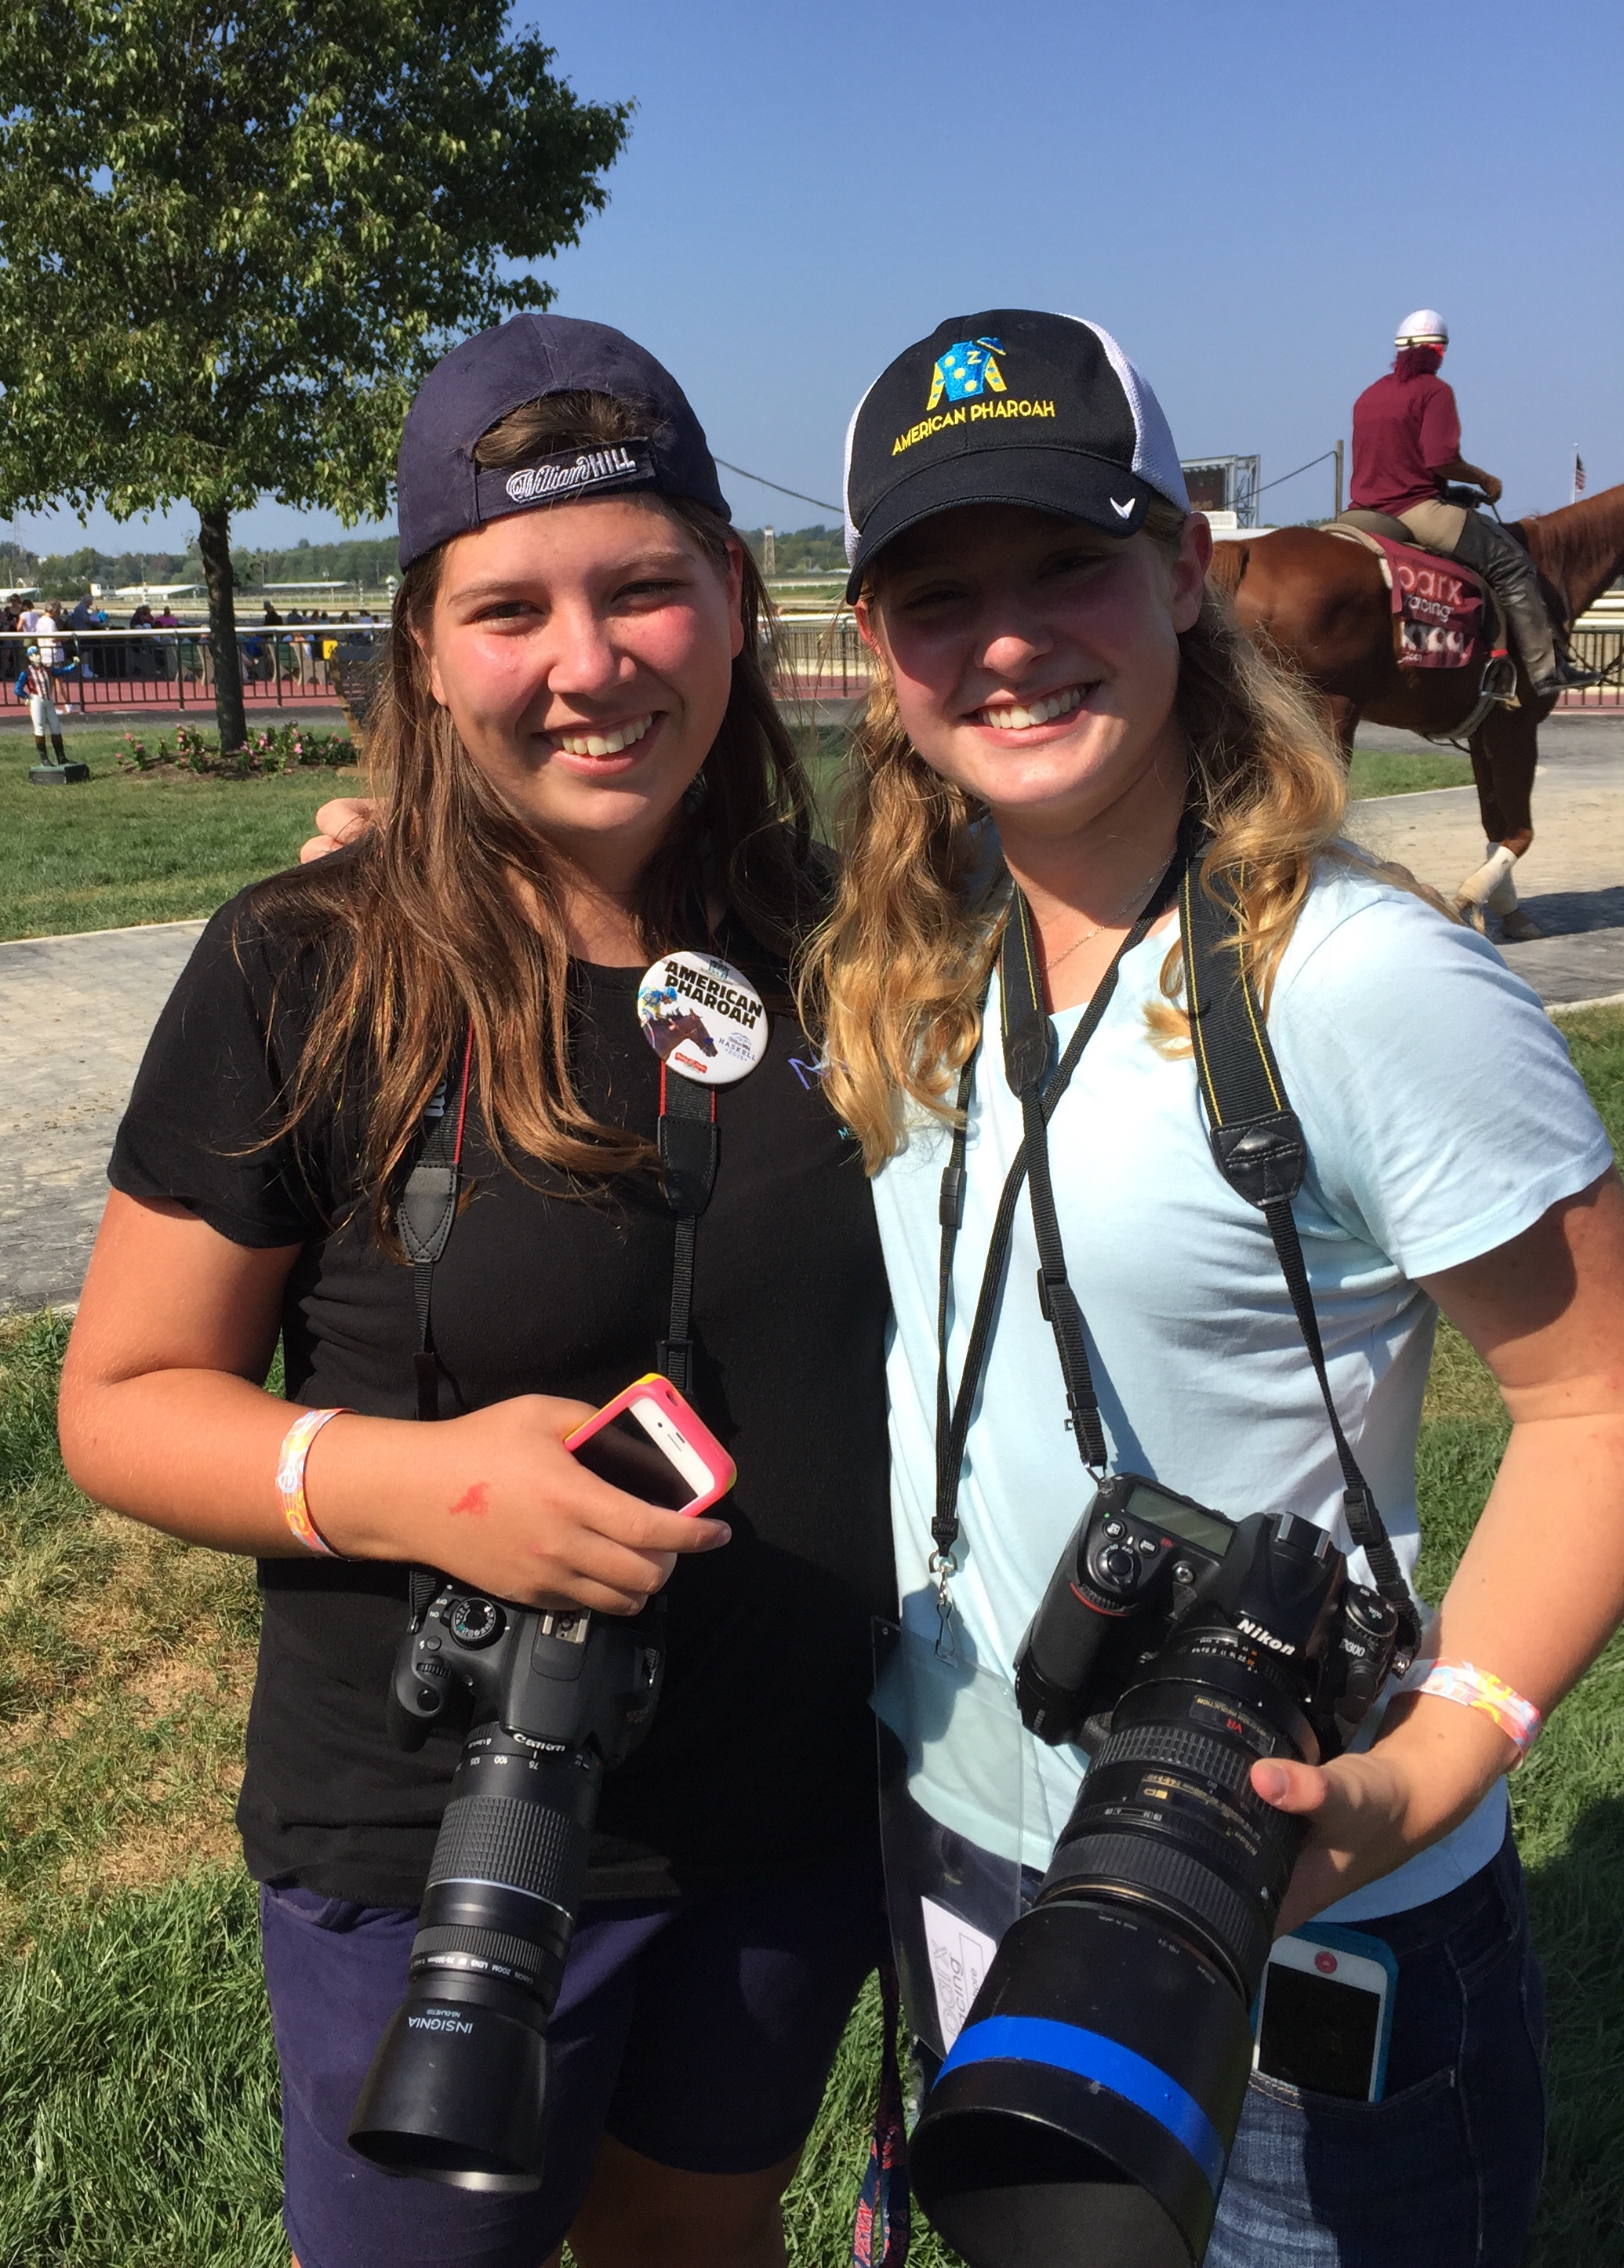 'Young Racing Photographers' Panelists Adrianna Lynch (L) and Sophie Shore (R) at Parx Racing in Bensalem, PA.